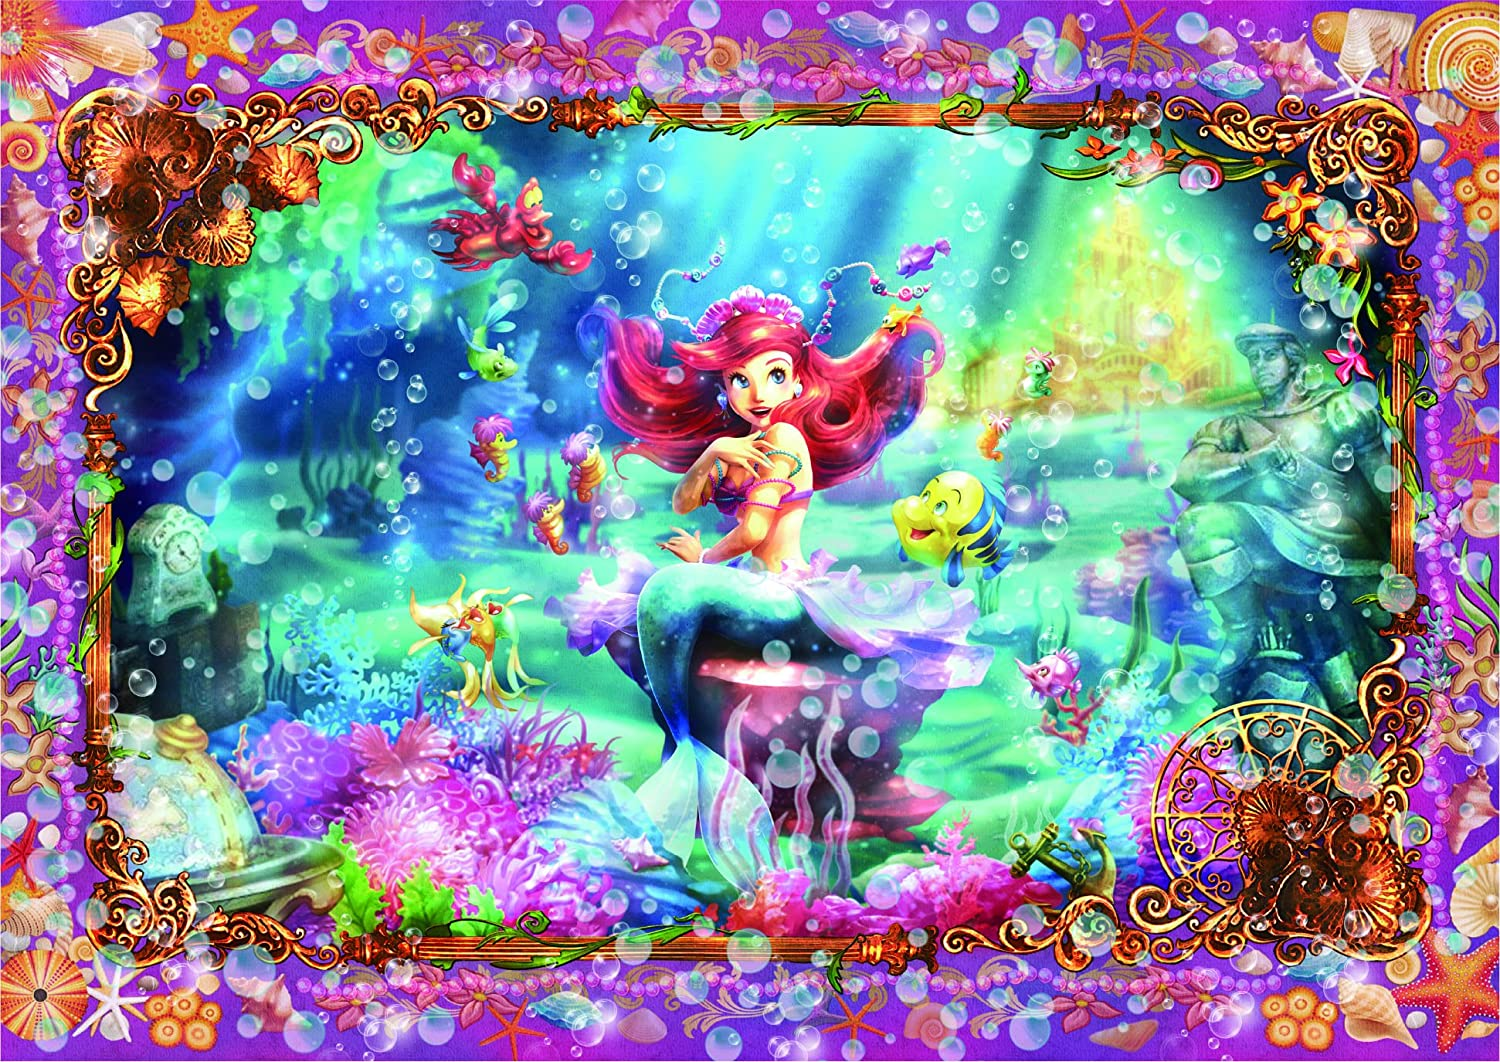 266 piece jigsaw puzzle Pure White Little Mermaid Beautiful Mermaid DPG266565 tightly